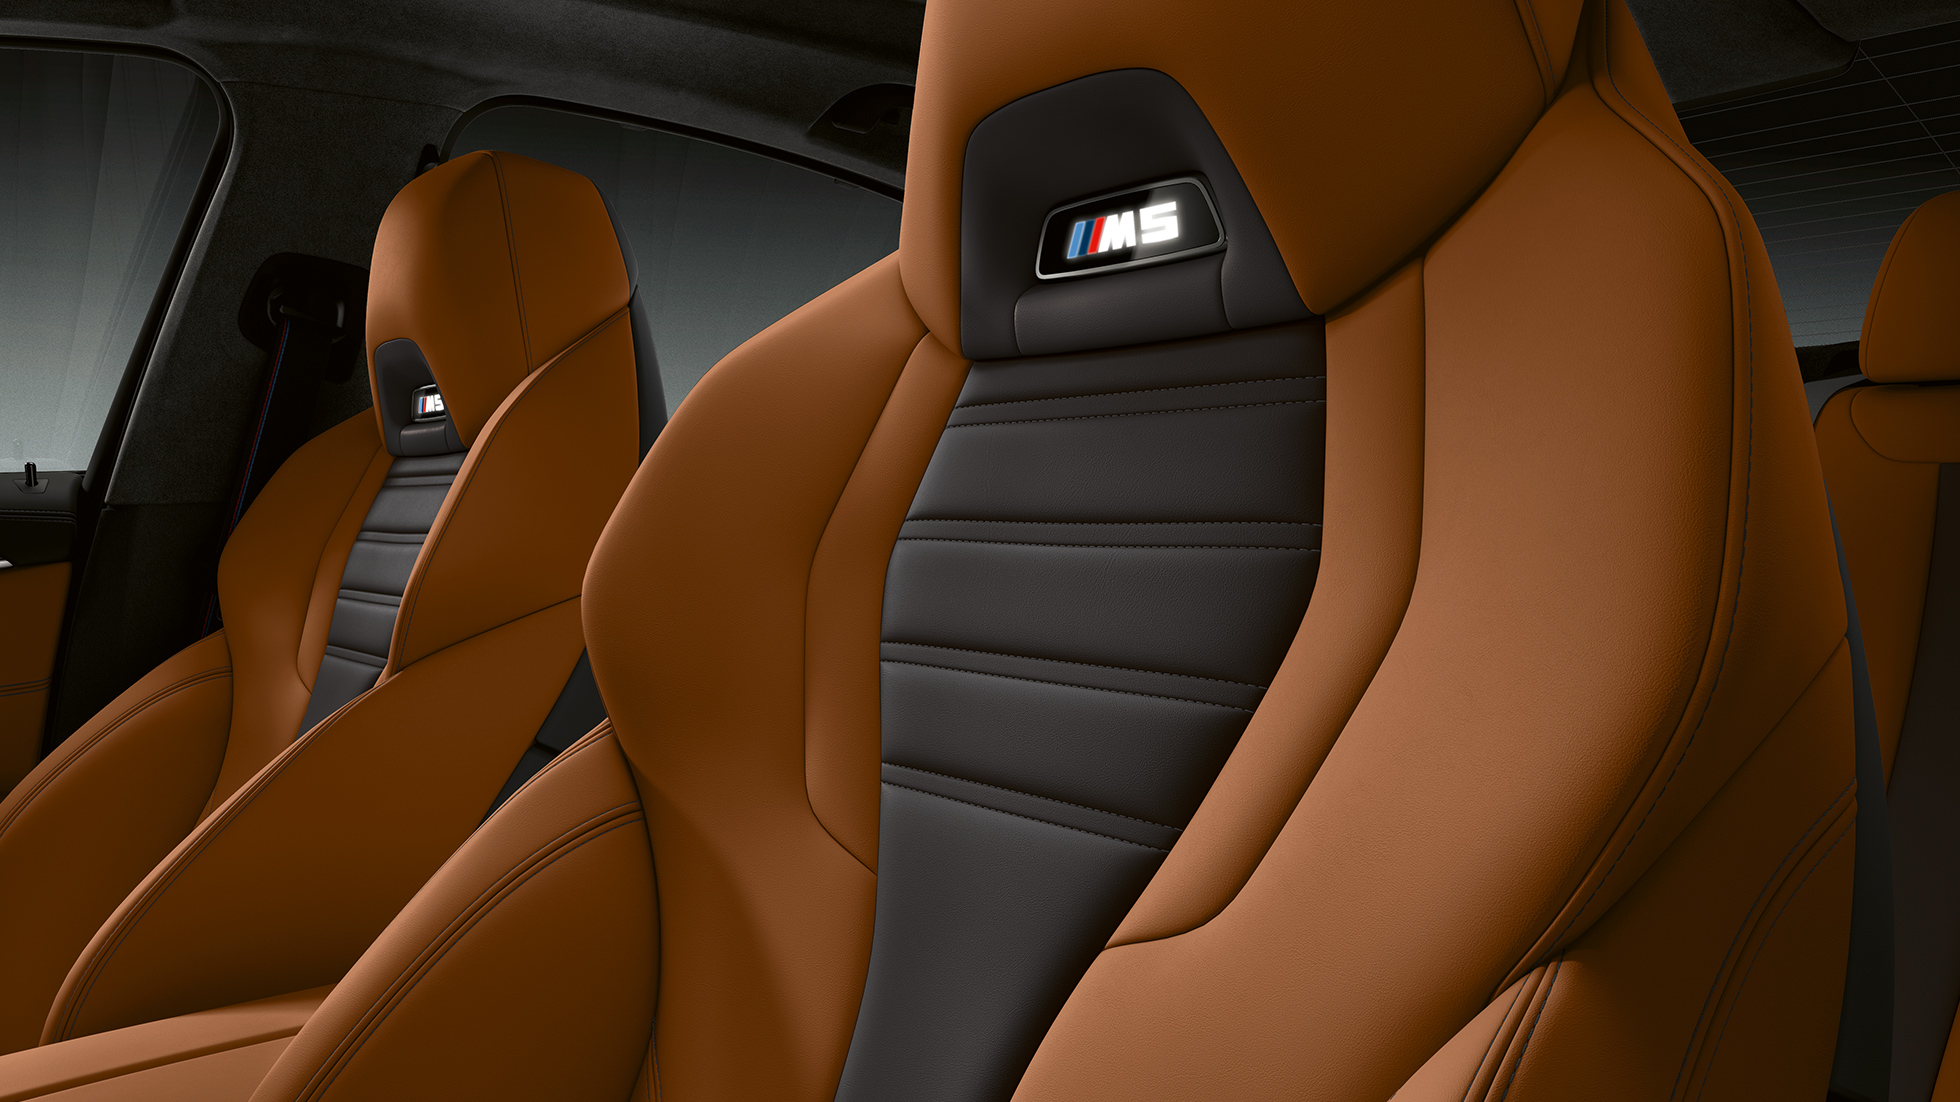 BMW M5 interior, seats.